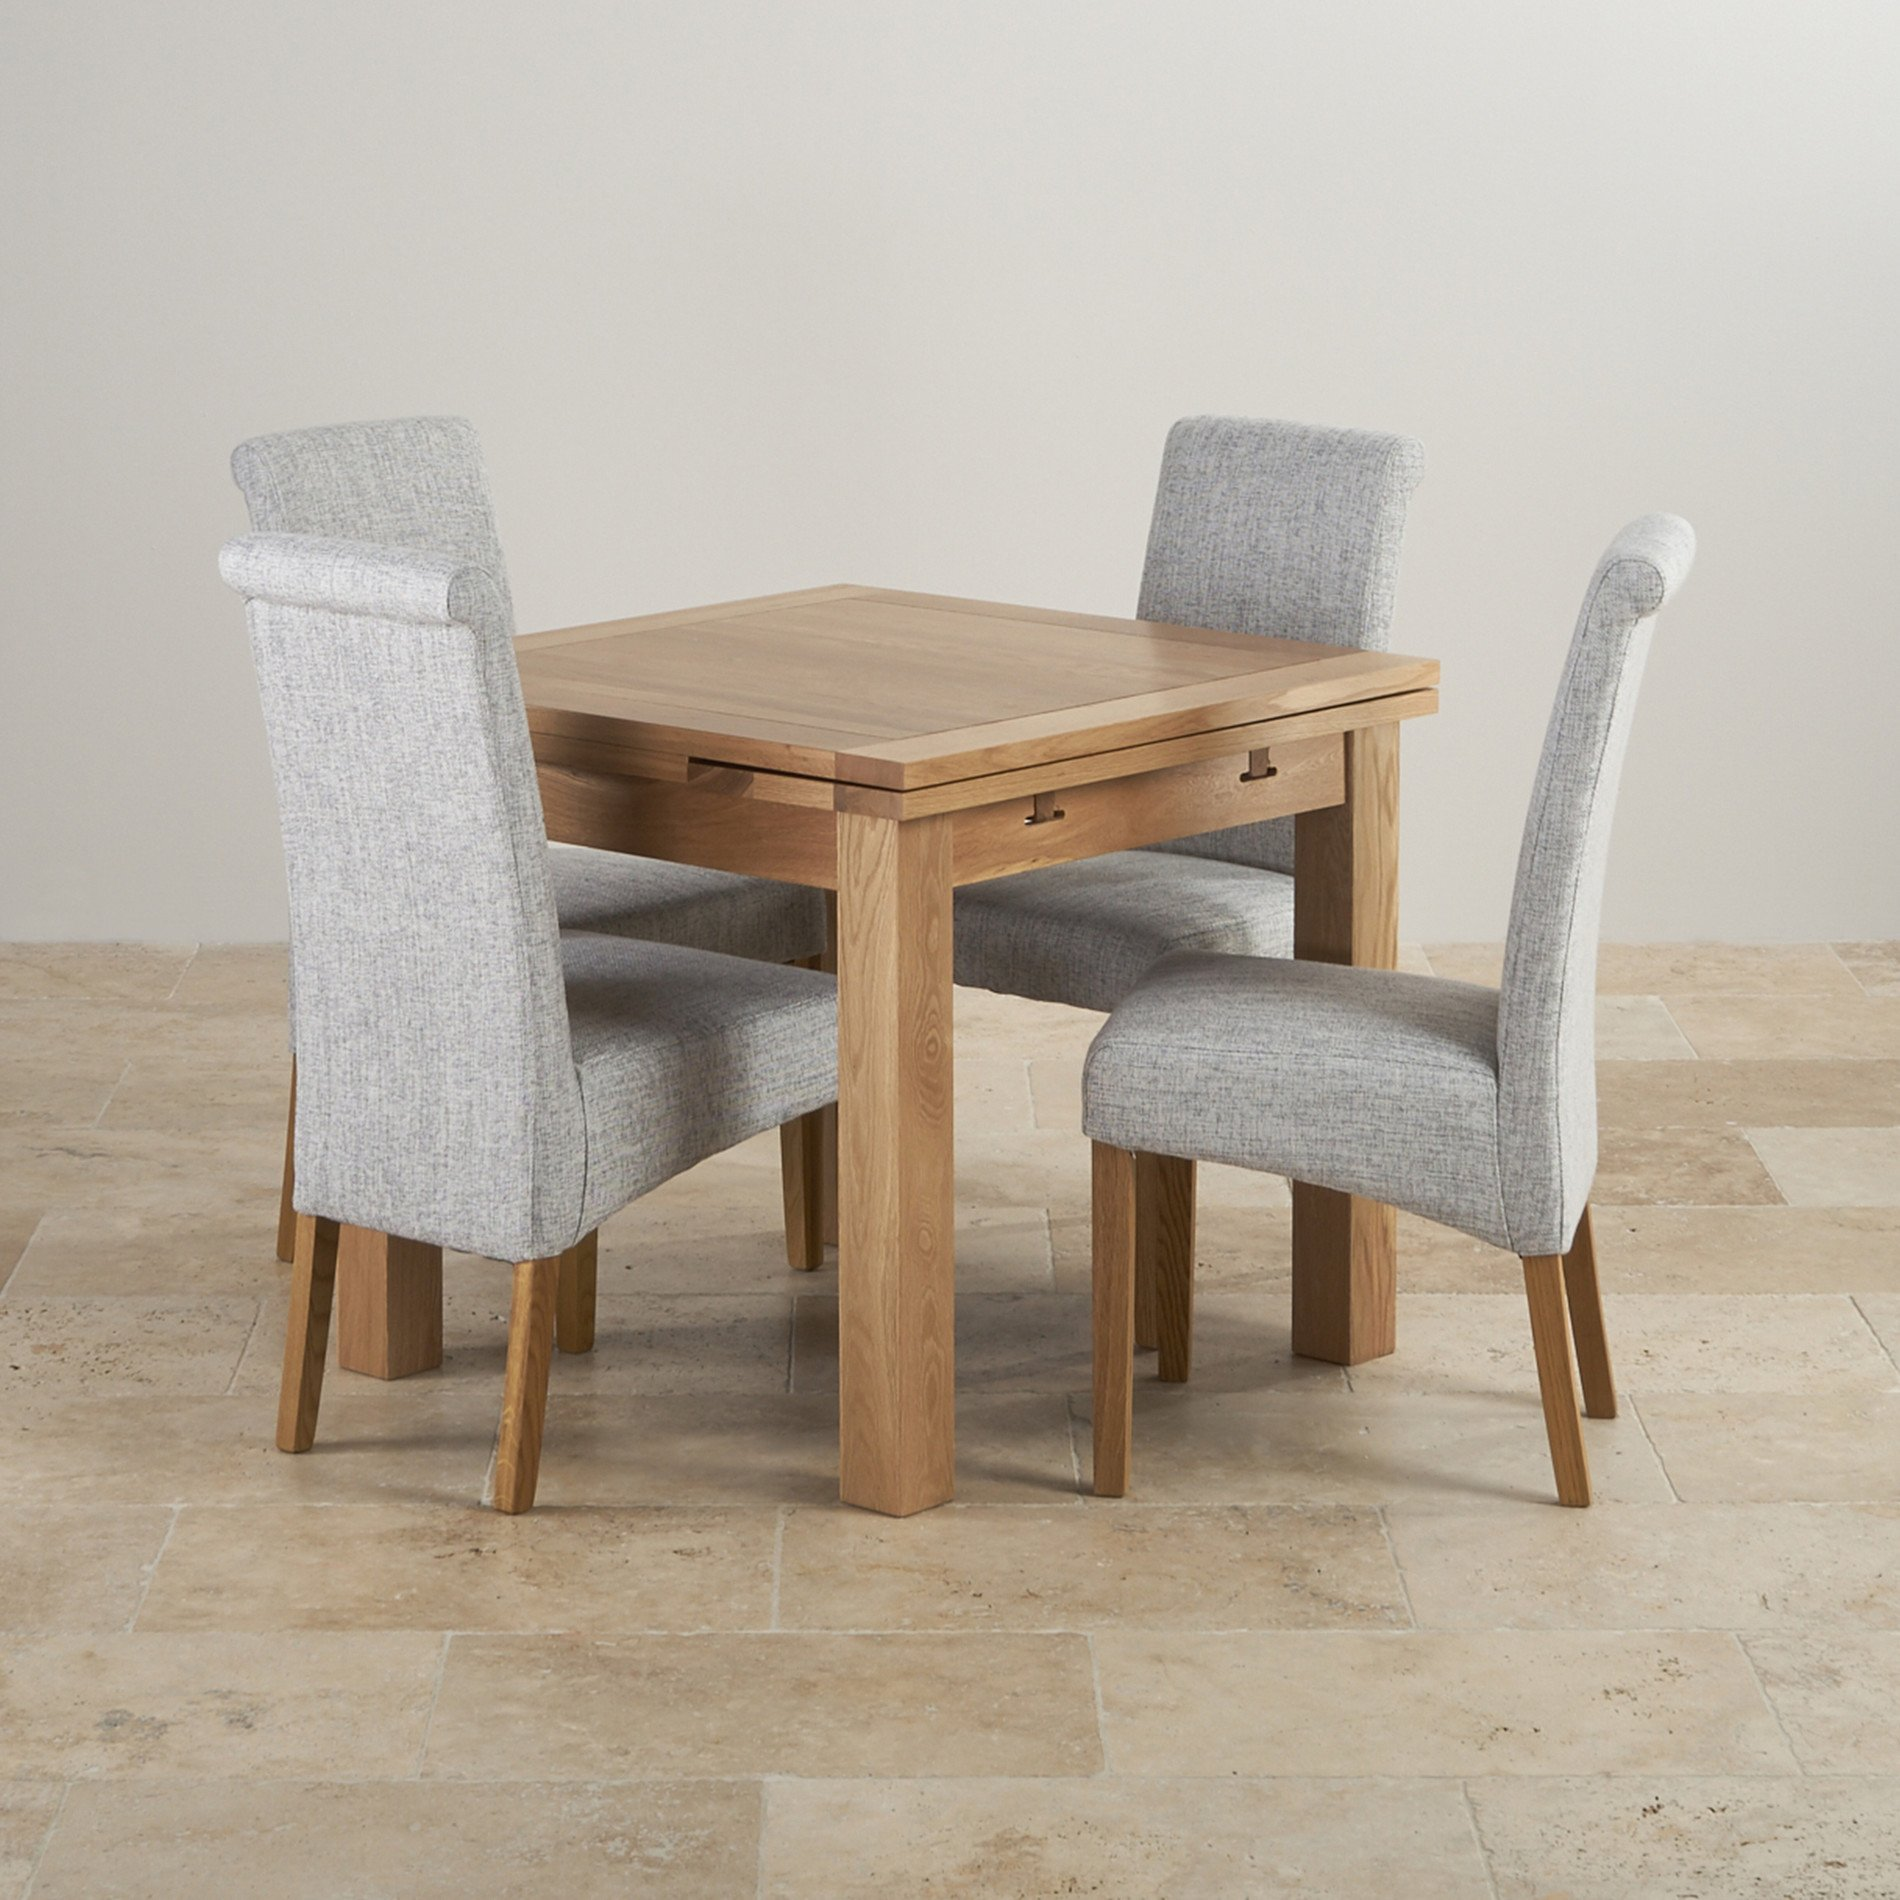 dorset oak 3ft dining table with 4 grey fabric chairs